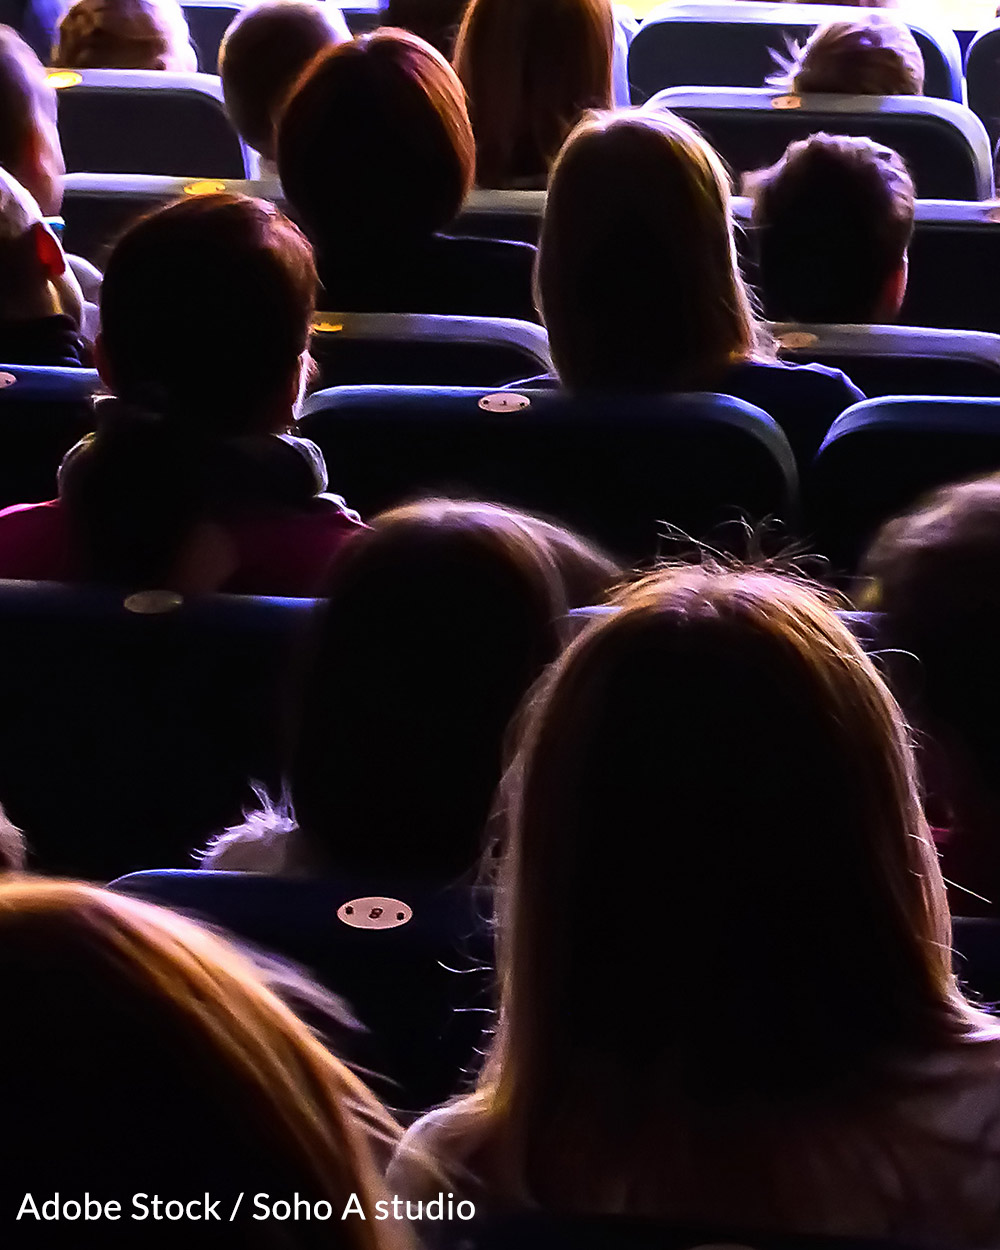 Some theaters have adopted accommodations for those with sensory issues, but not all.